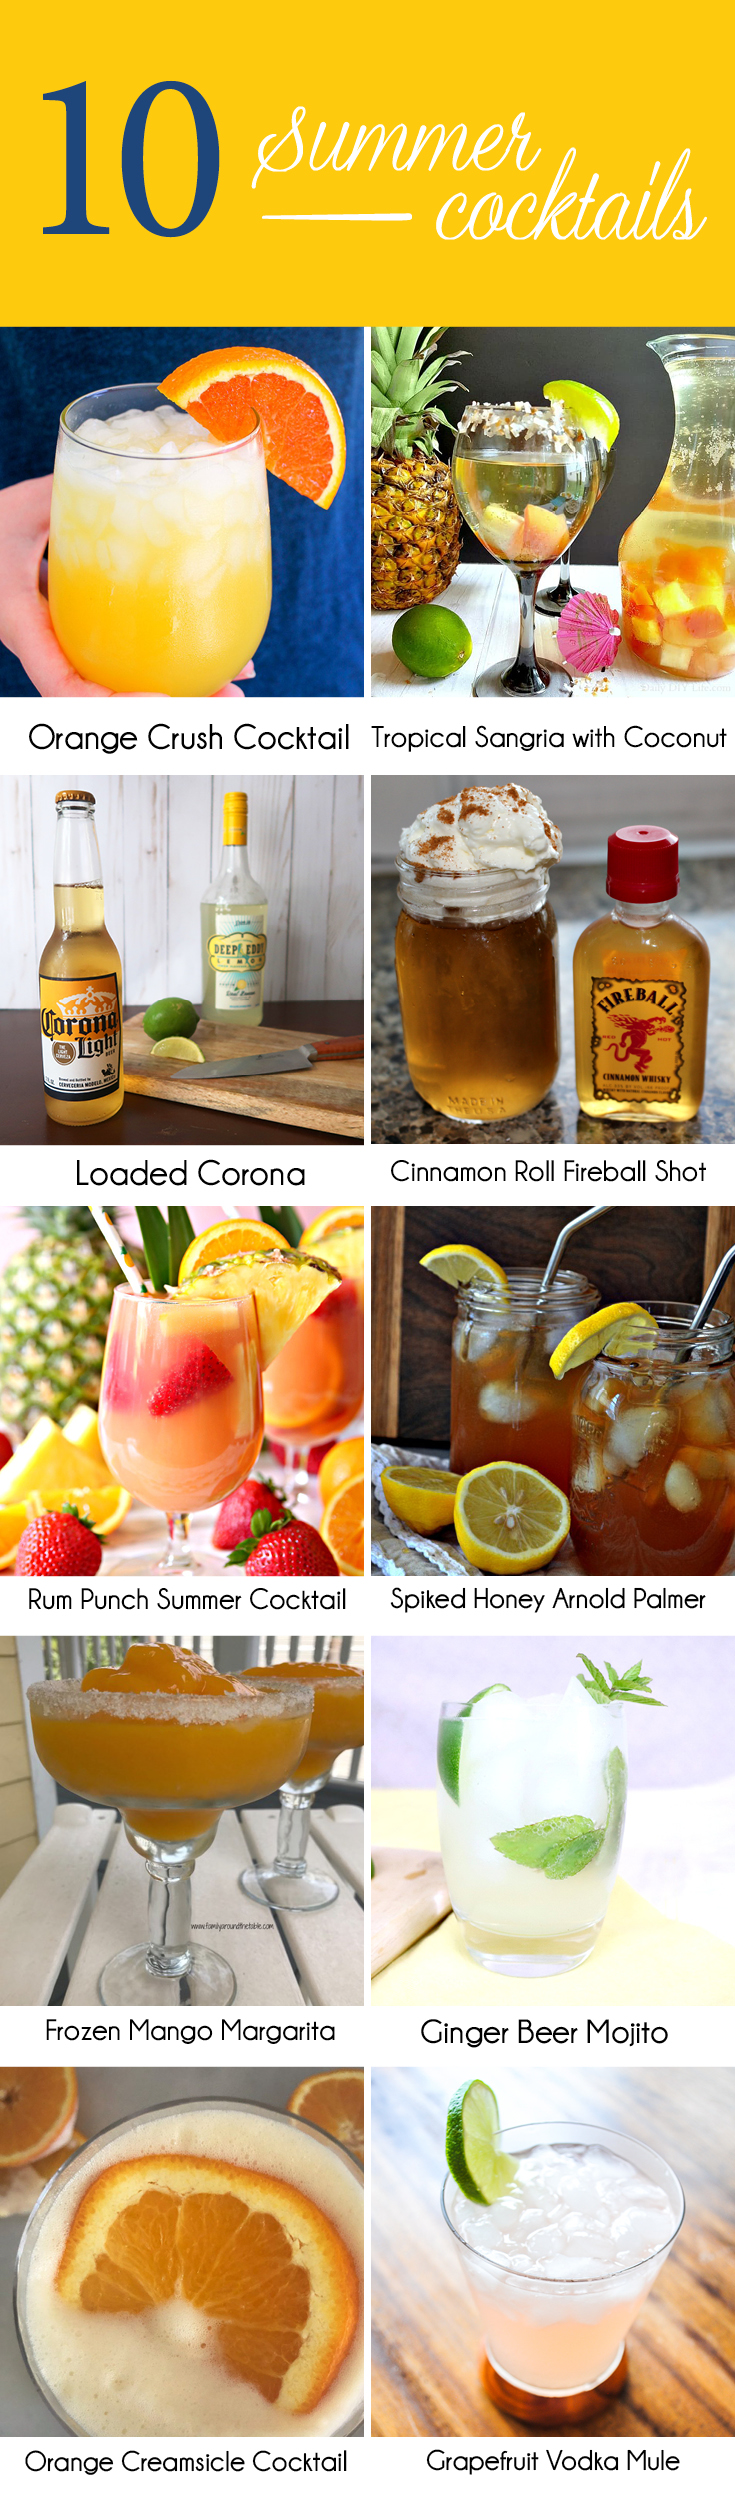 10 Summer Cocktails.jpg